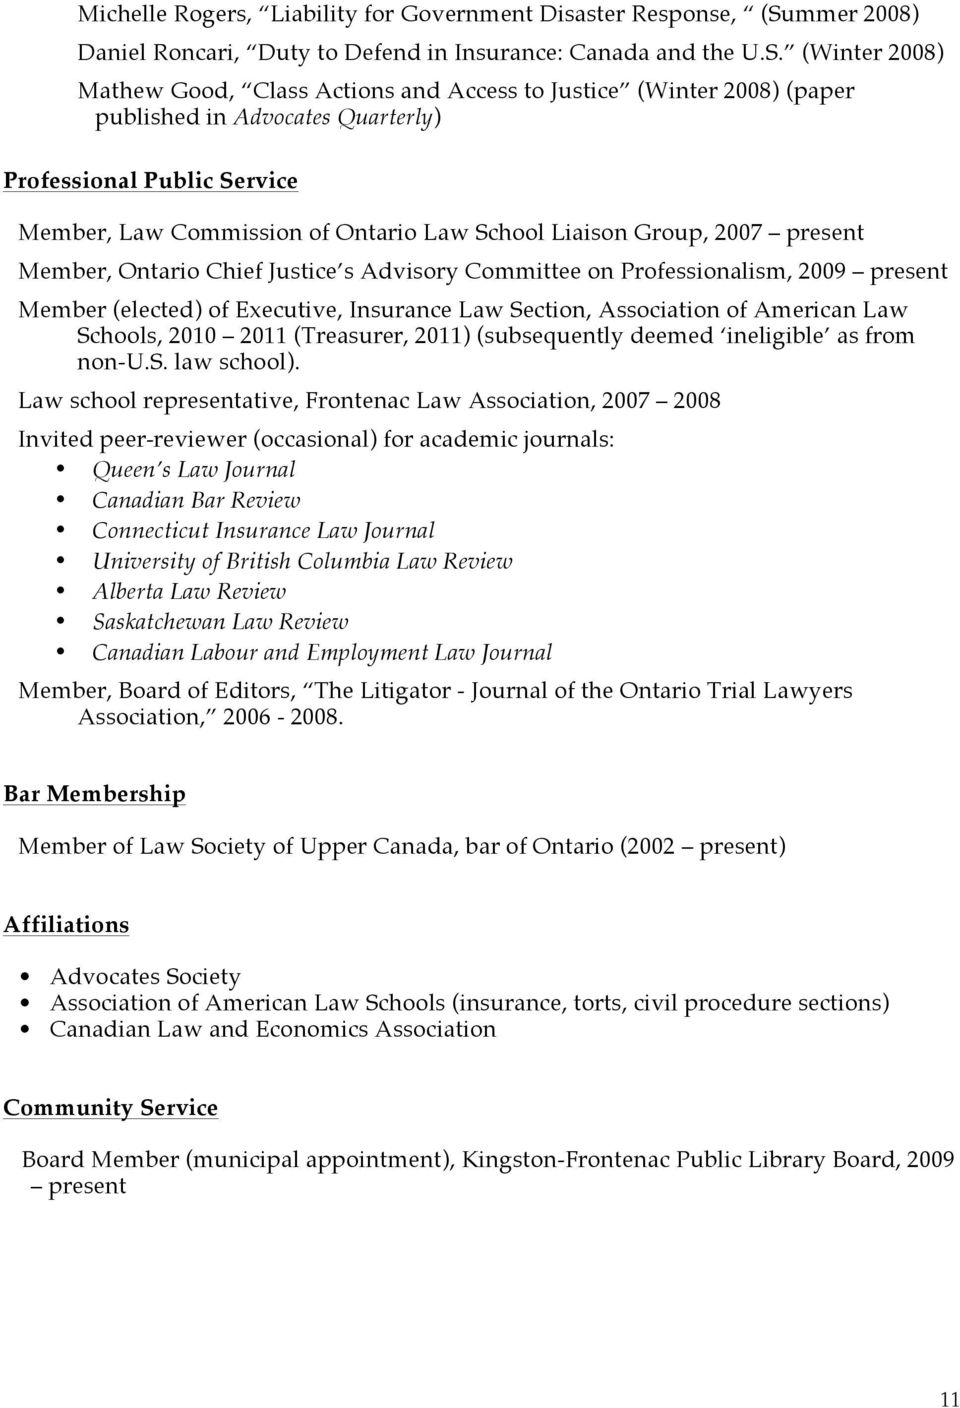 (Winter 2008) Mathew Good, Class Actions and Access to Justice (Winter 2008) (paper published in Advocates Quarterly) Professional Public Service Member, Law Commission of Ontario Law School Liaison